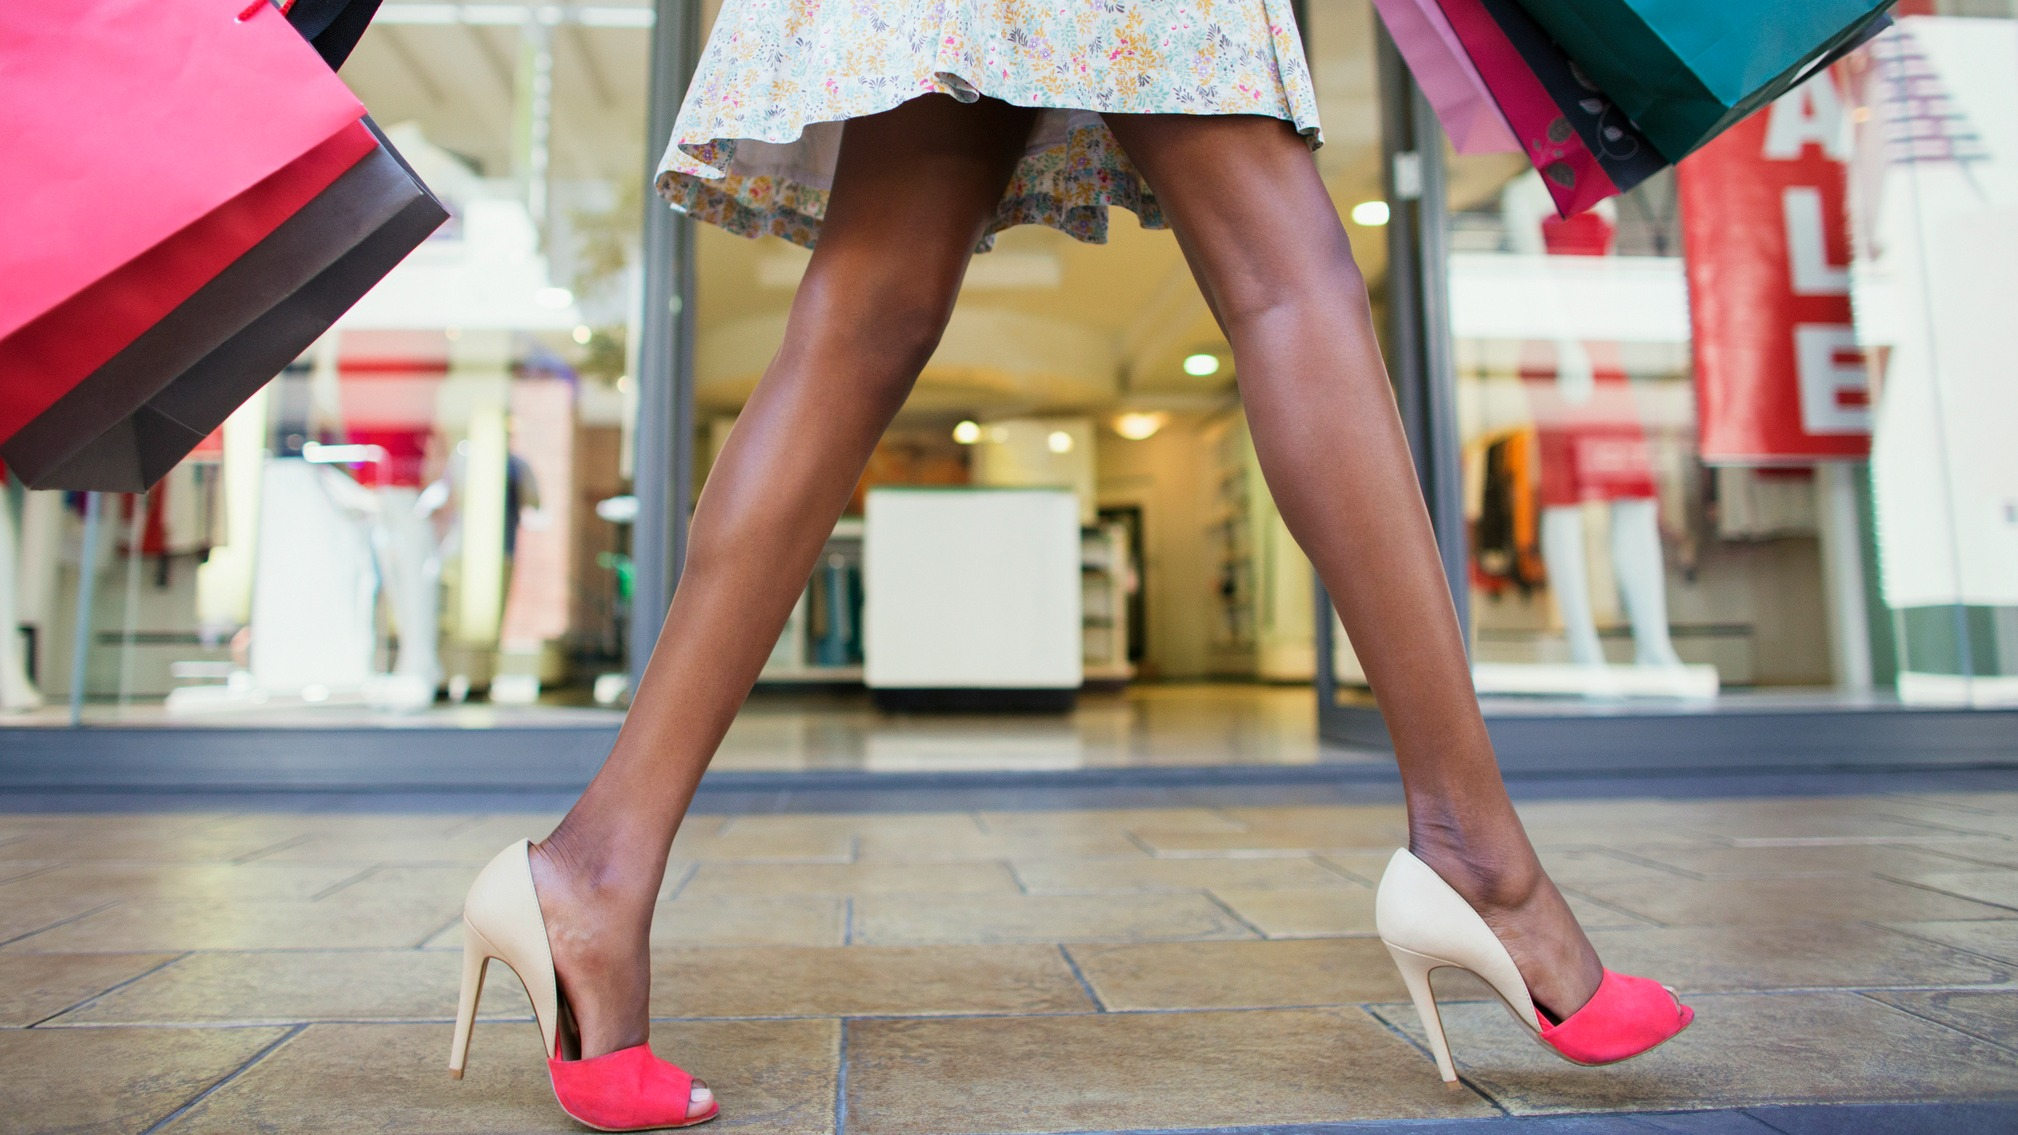 10 Things No One Ever Tells You About: Shaving Your Legs